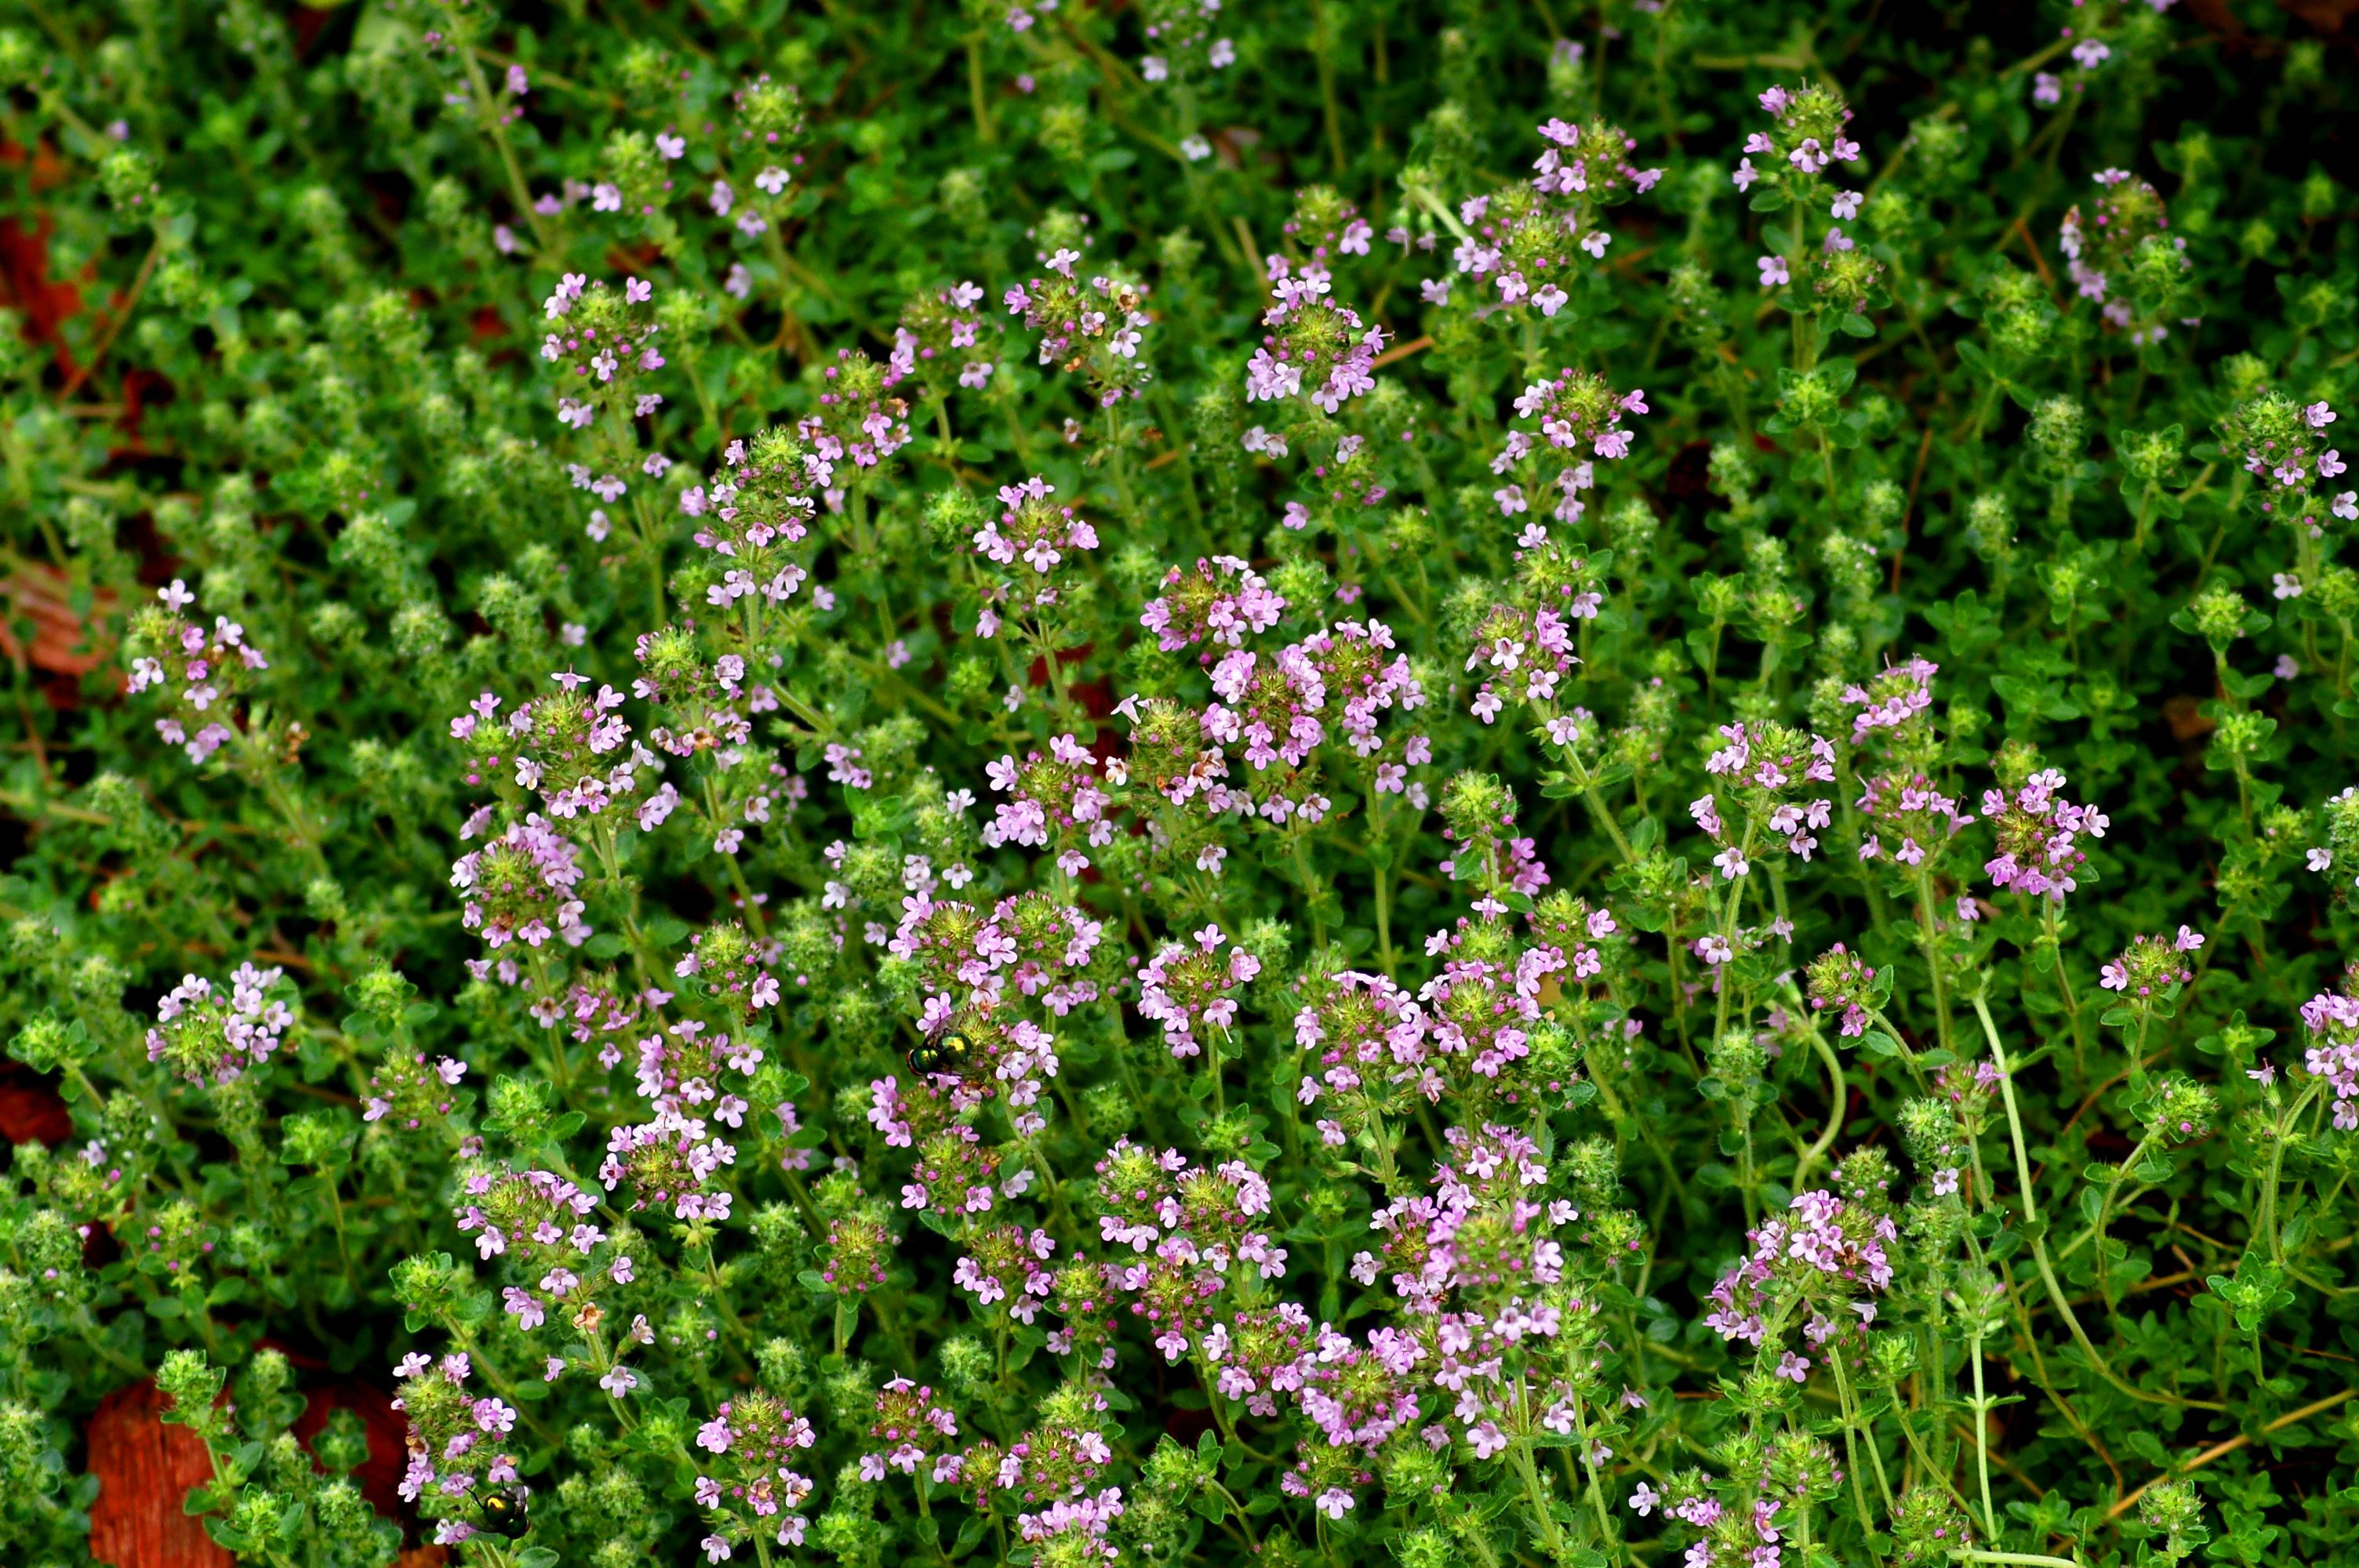 Red creeping thyme in bloom.